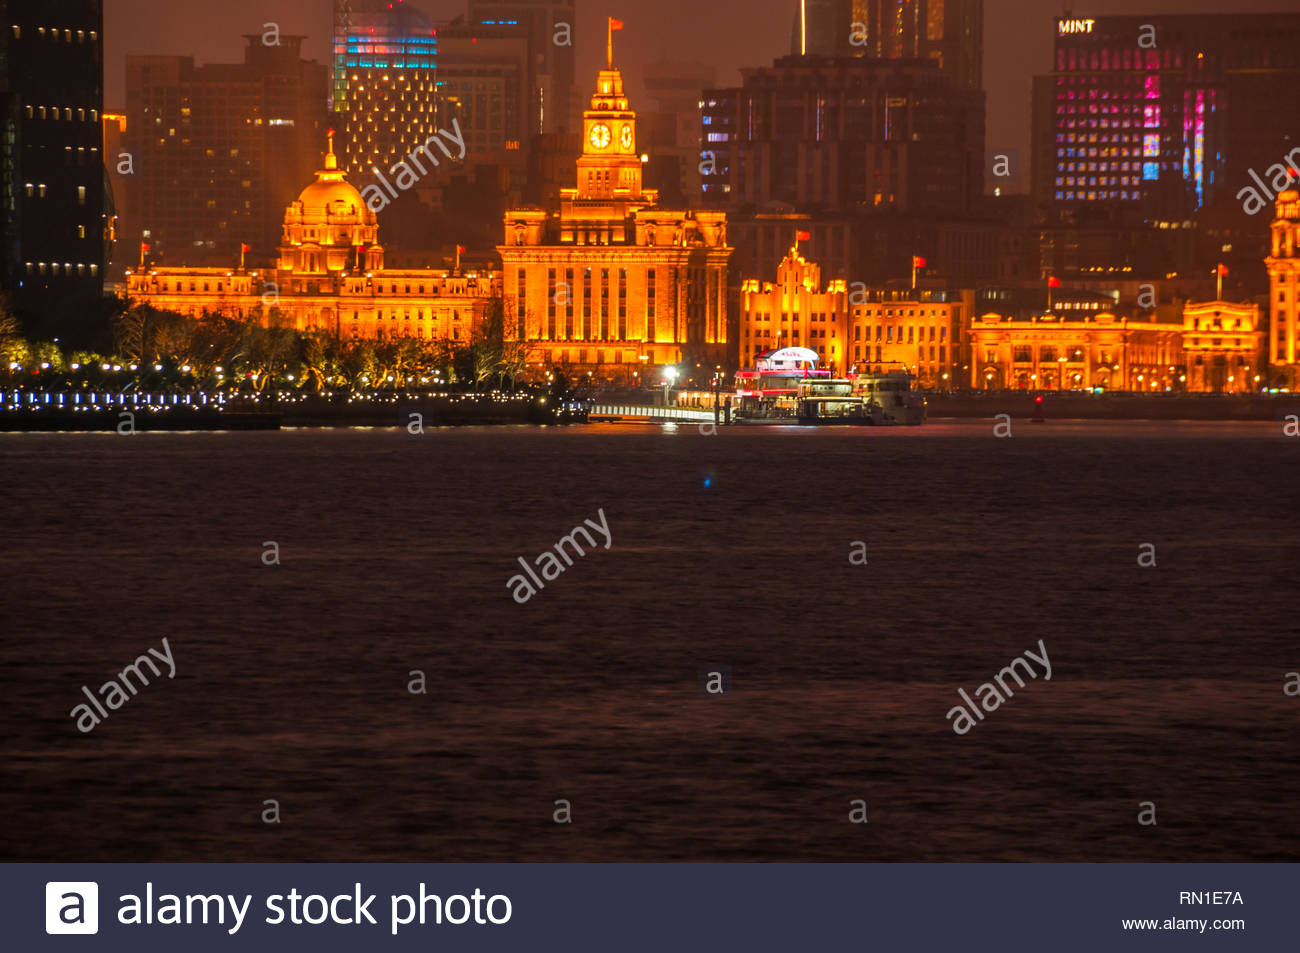 The historical architecture of the Bund including the Custom House and former Hong Kong and Shanghai Bank seen at night from the North Bund area. - Stock Image